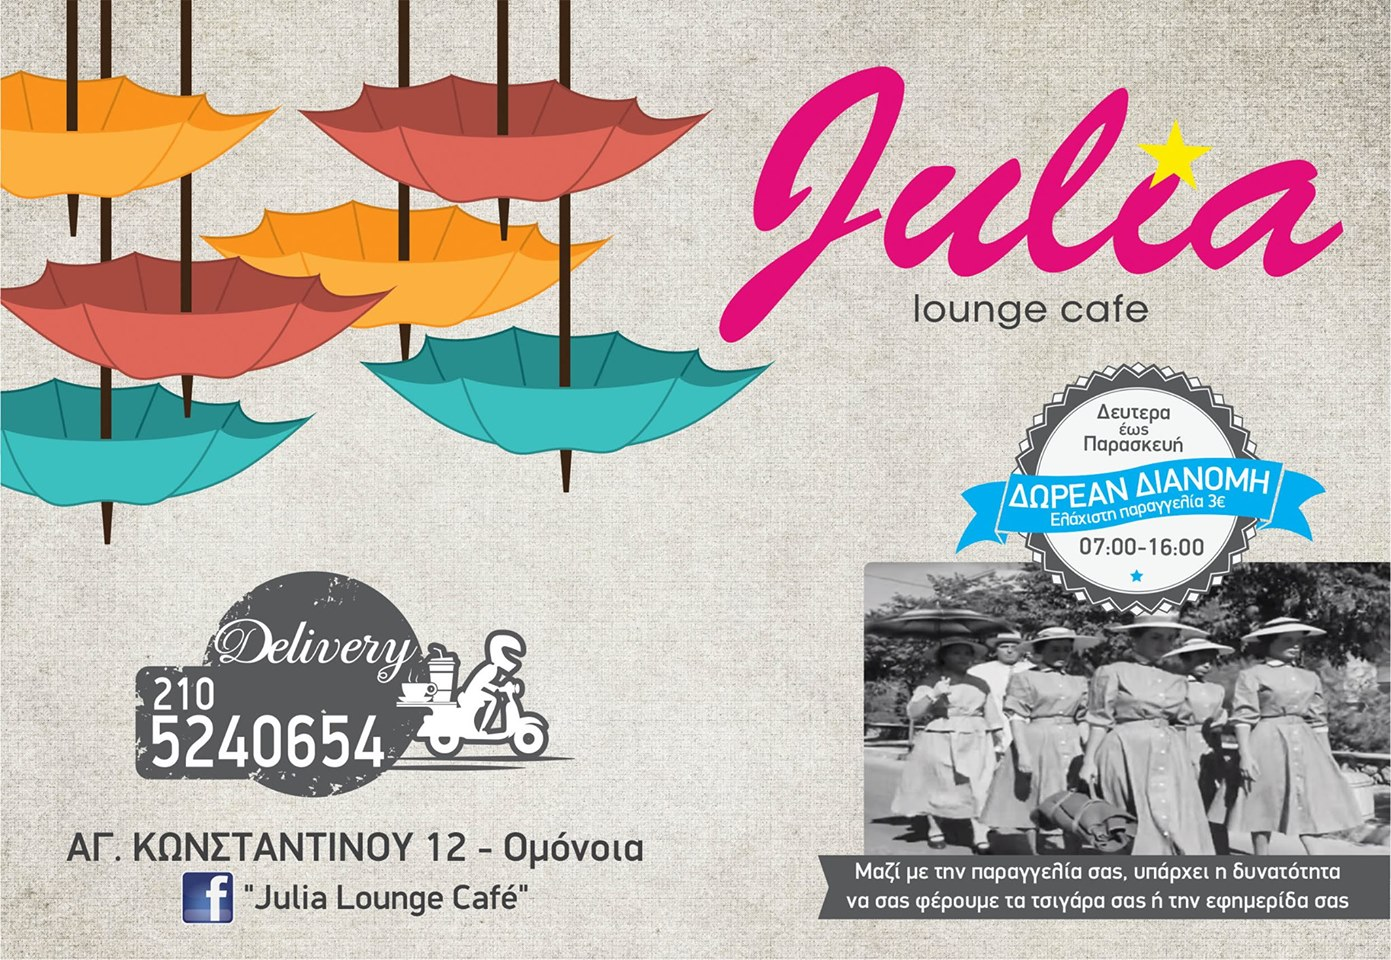 Julia Lounge Cafe Cover Image on XploreGreece